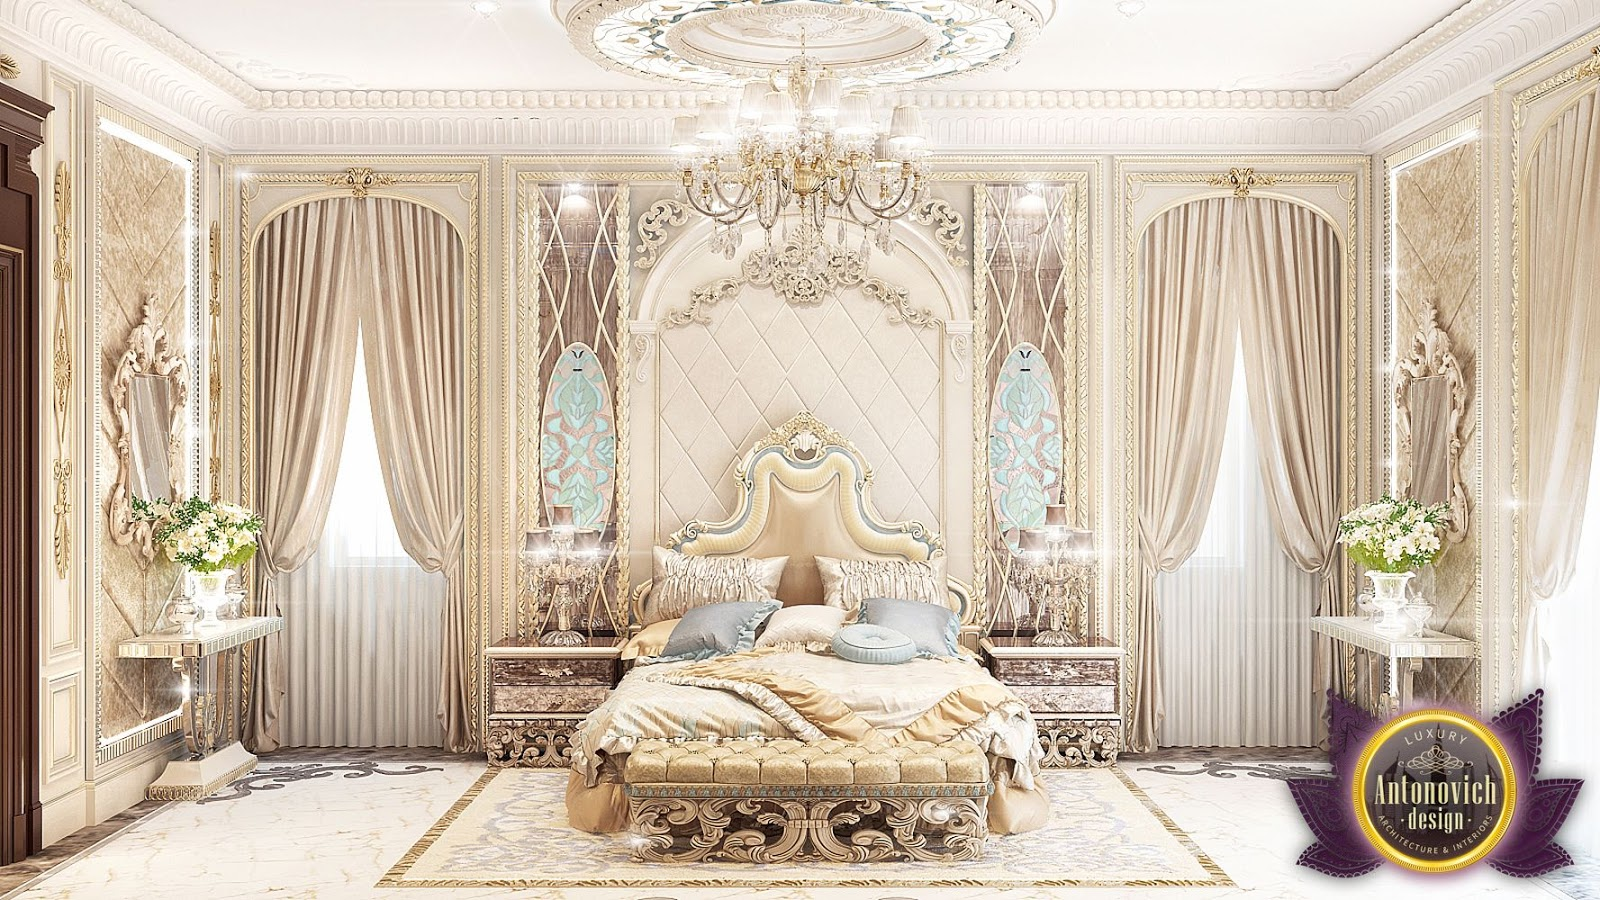 Luxury Antonovich Design Uae Luxury Royal Arabic Master